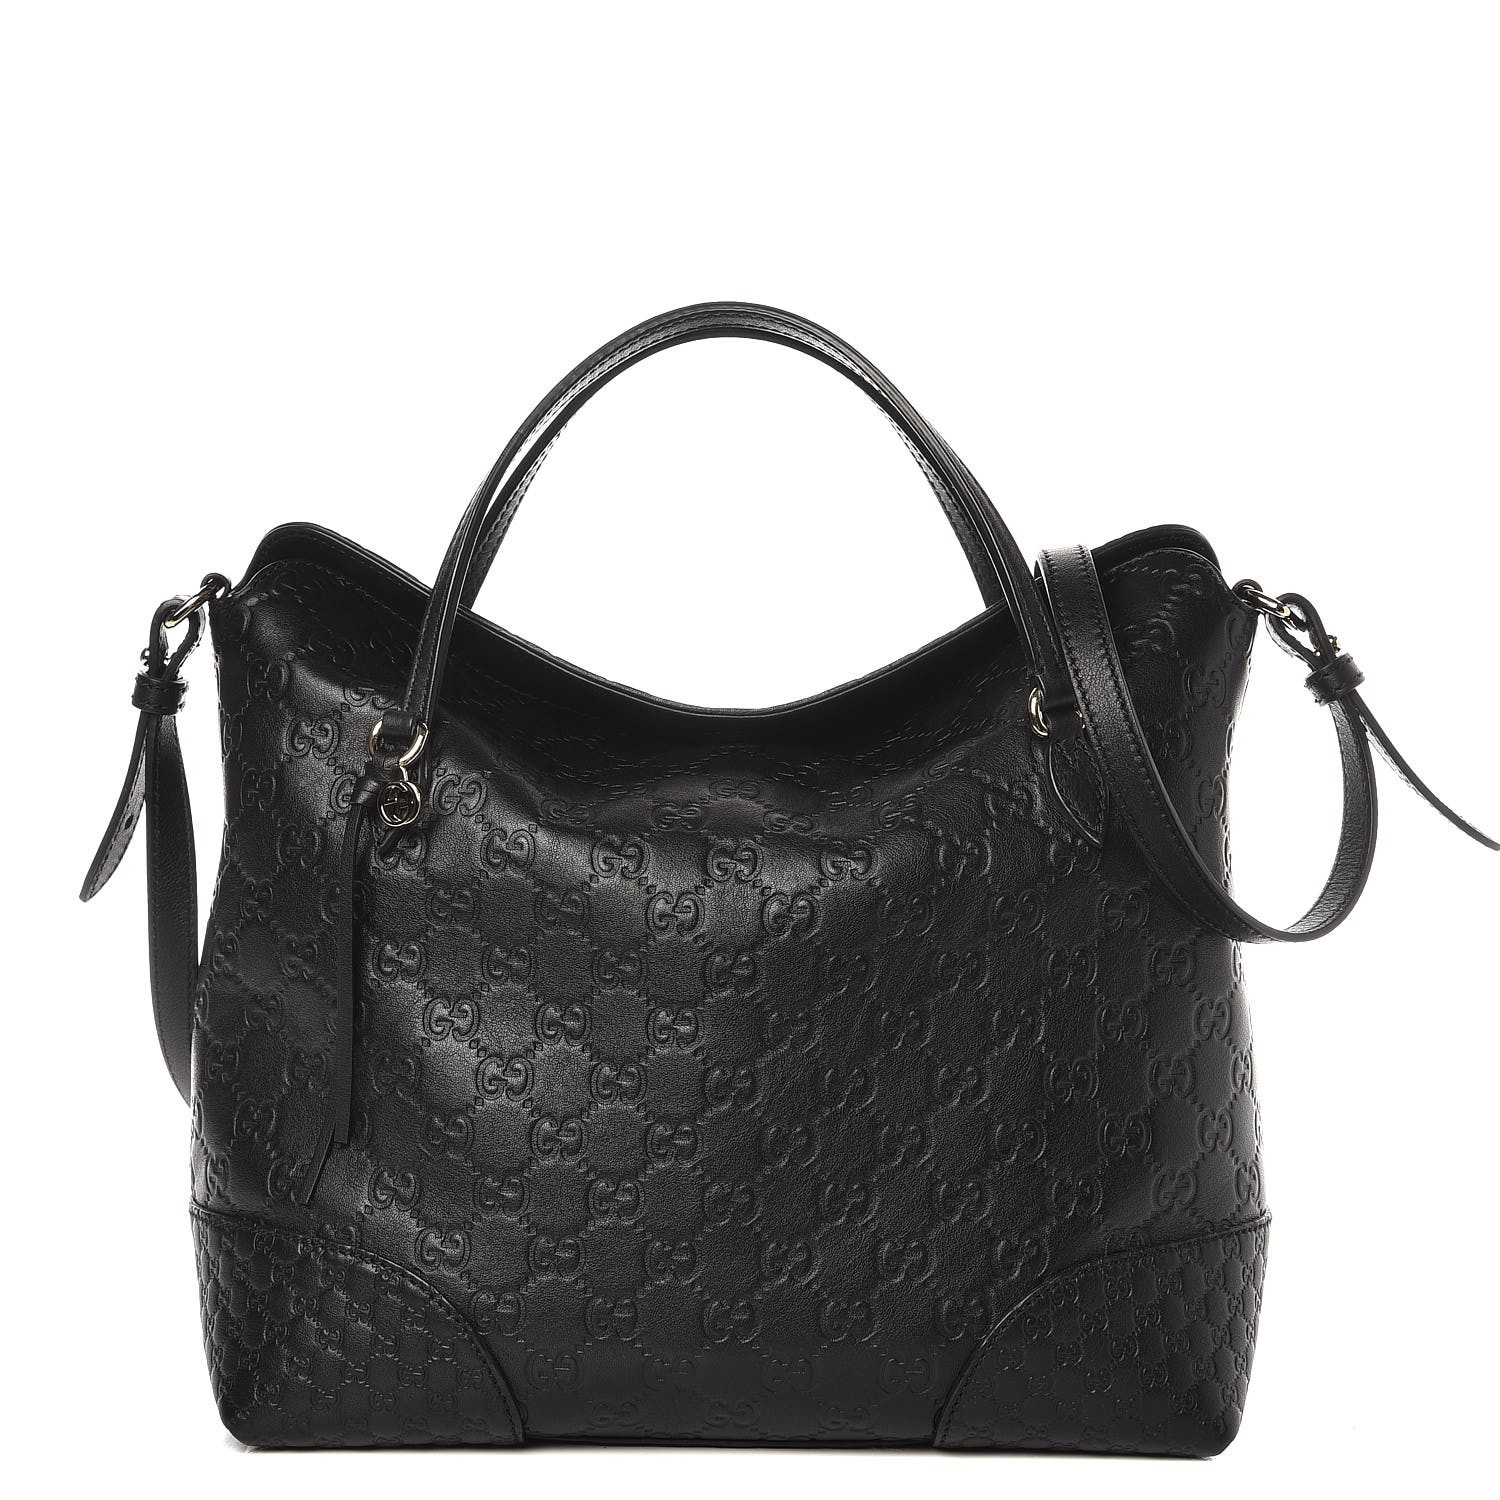 c4d6b8bd0388a7 GUCCI Guccissima Medium Bree Top Handle Bag Black 272937